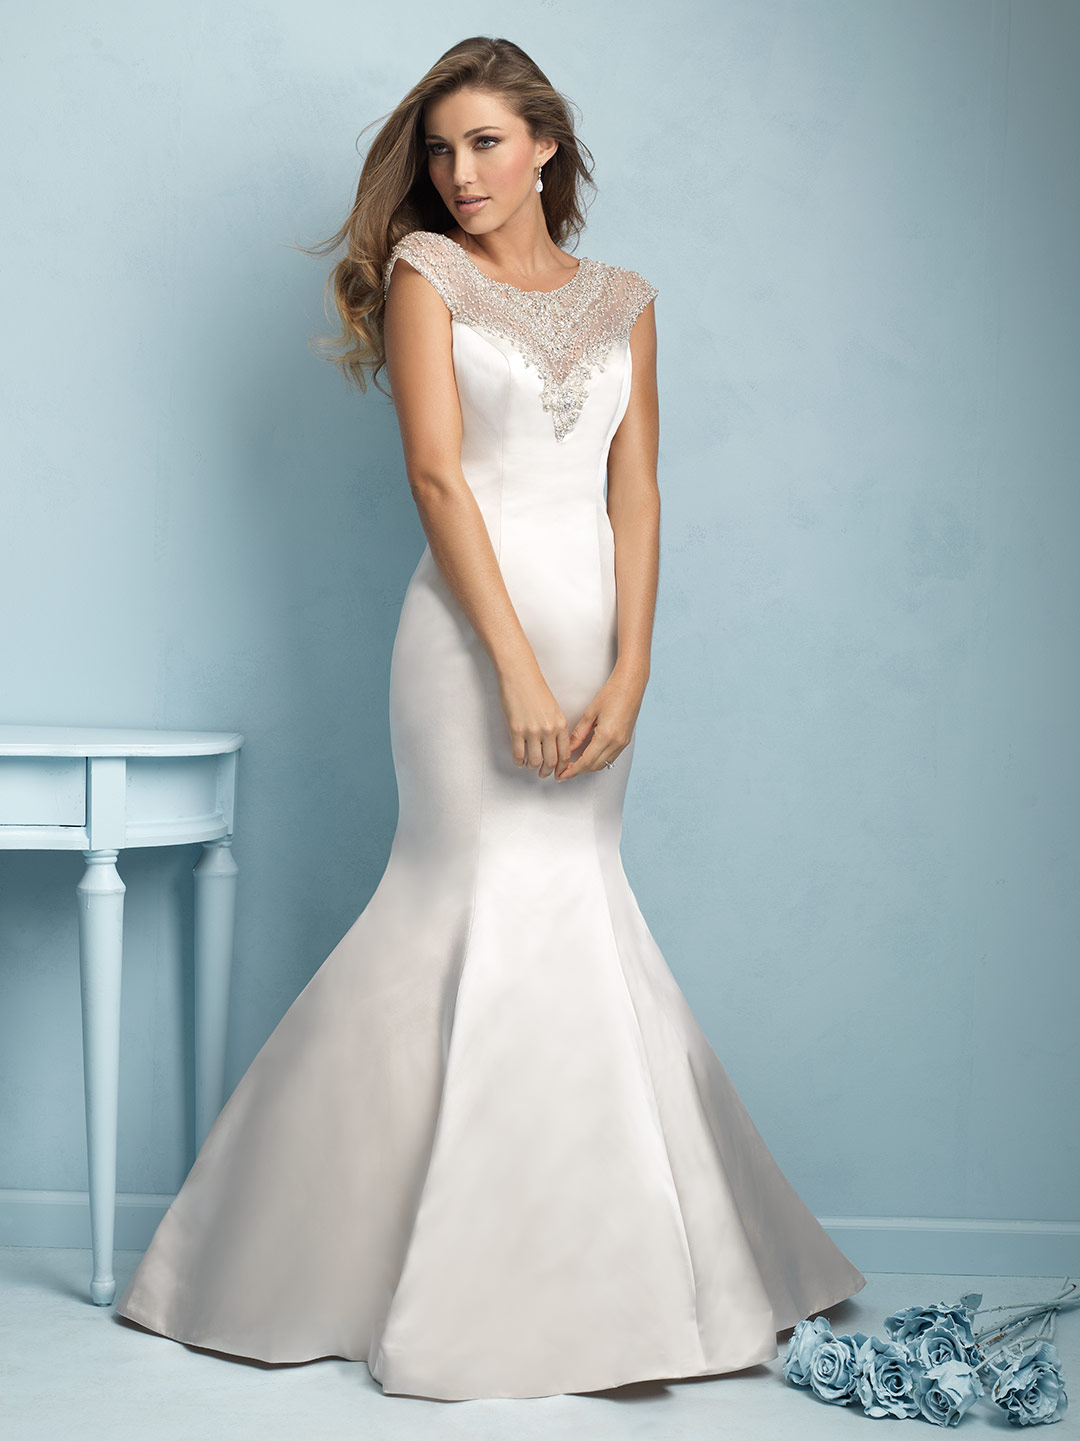 Awesome Sell Old Wedding Dress Gallery - All Wedding Dresses ...